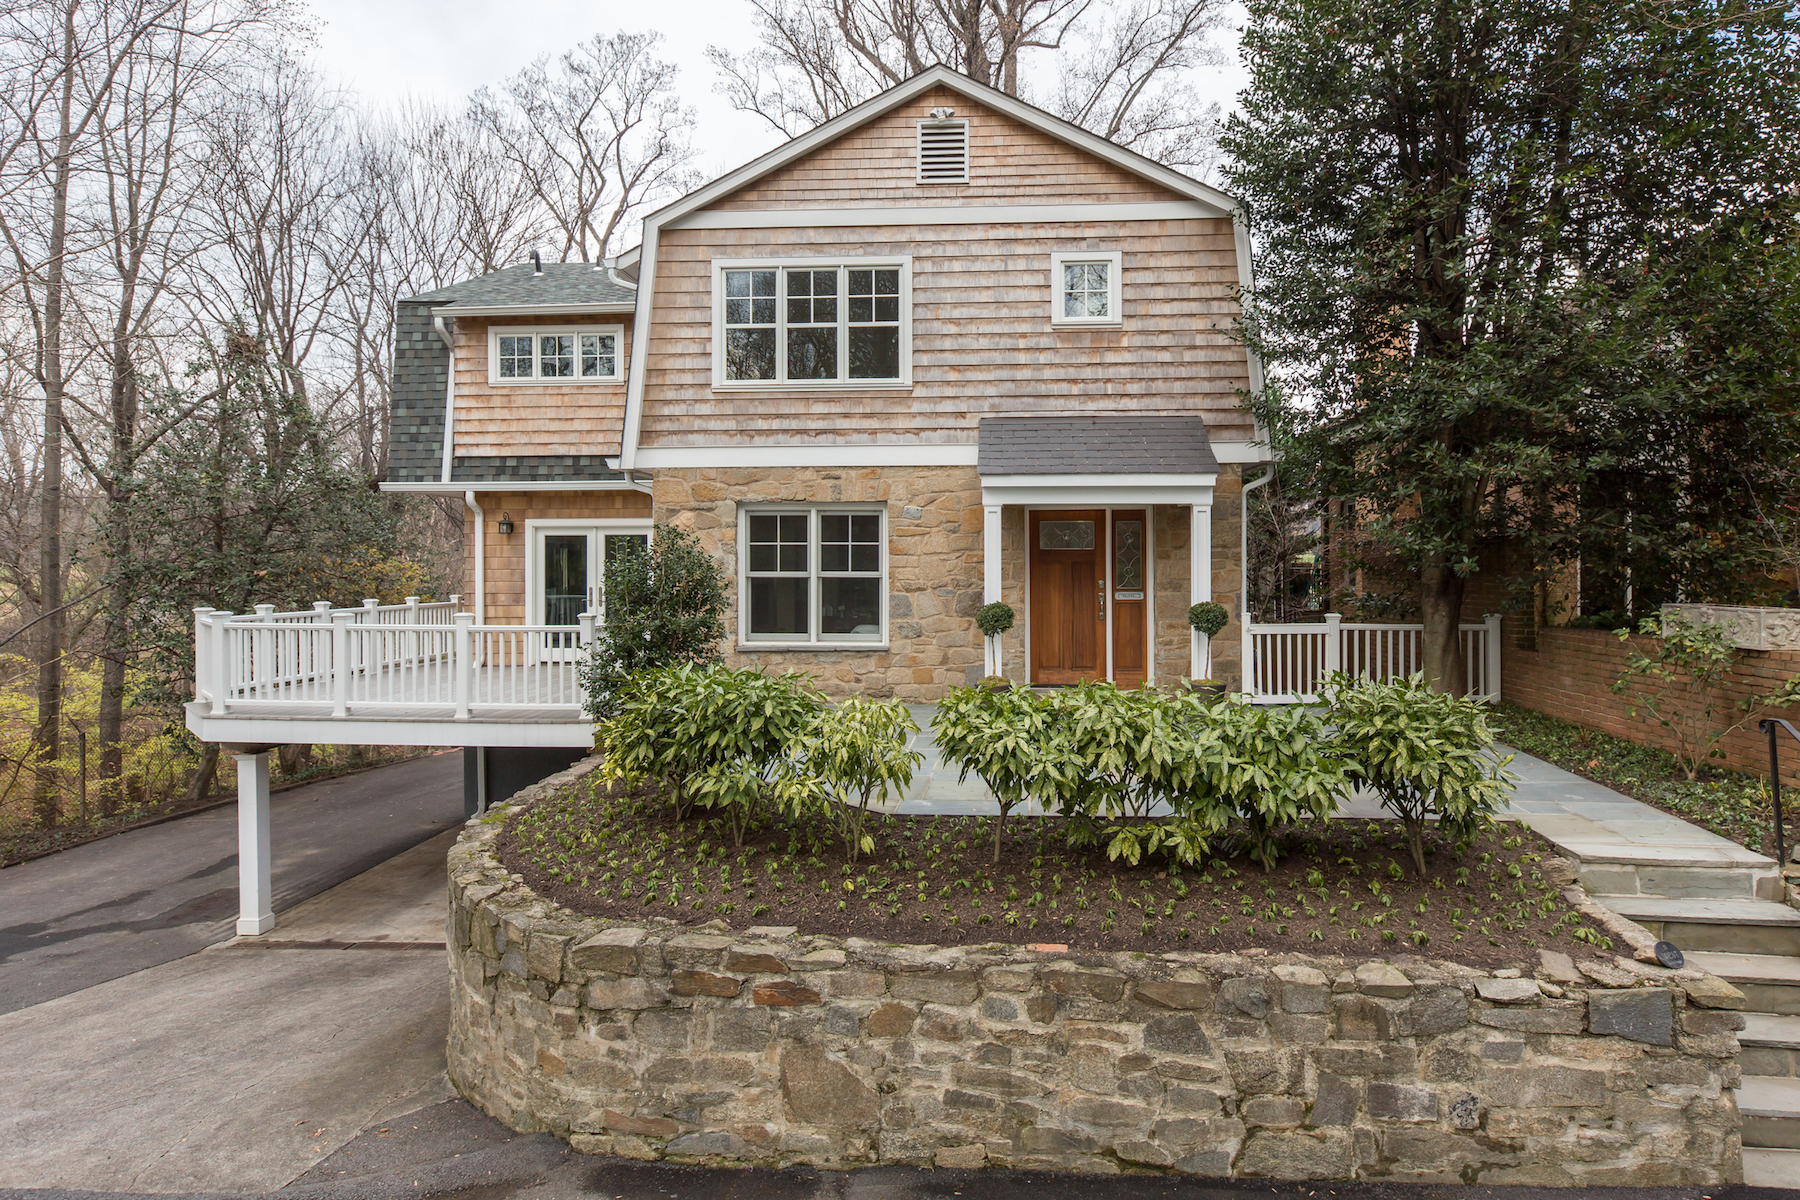 Single Family Home for Sale at Chevy Chase Village 51 Lenox Street W Chevy Chase, Maryland 20815 United States